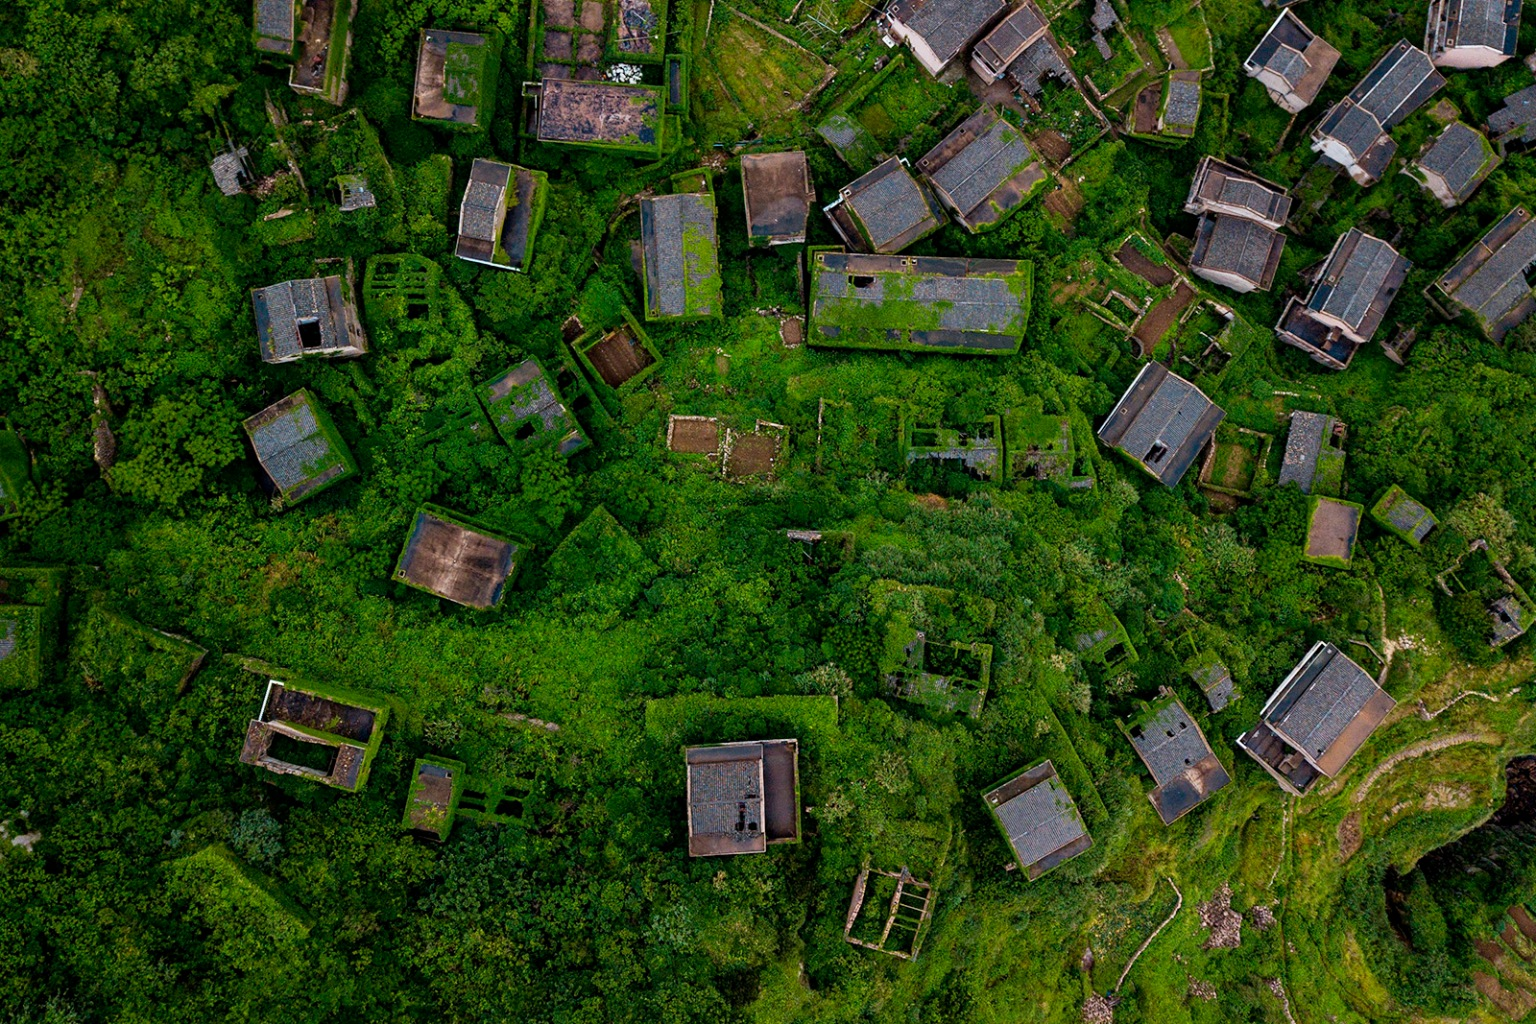 Lush vegetation engulfs an abandoned village in Houtouwan on Shengshan island, in China's eastern Zhejiang province, on May 31. JOHANNES EISELE/AFP/Getty Images